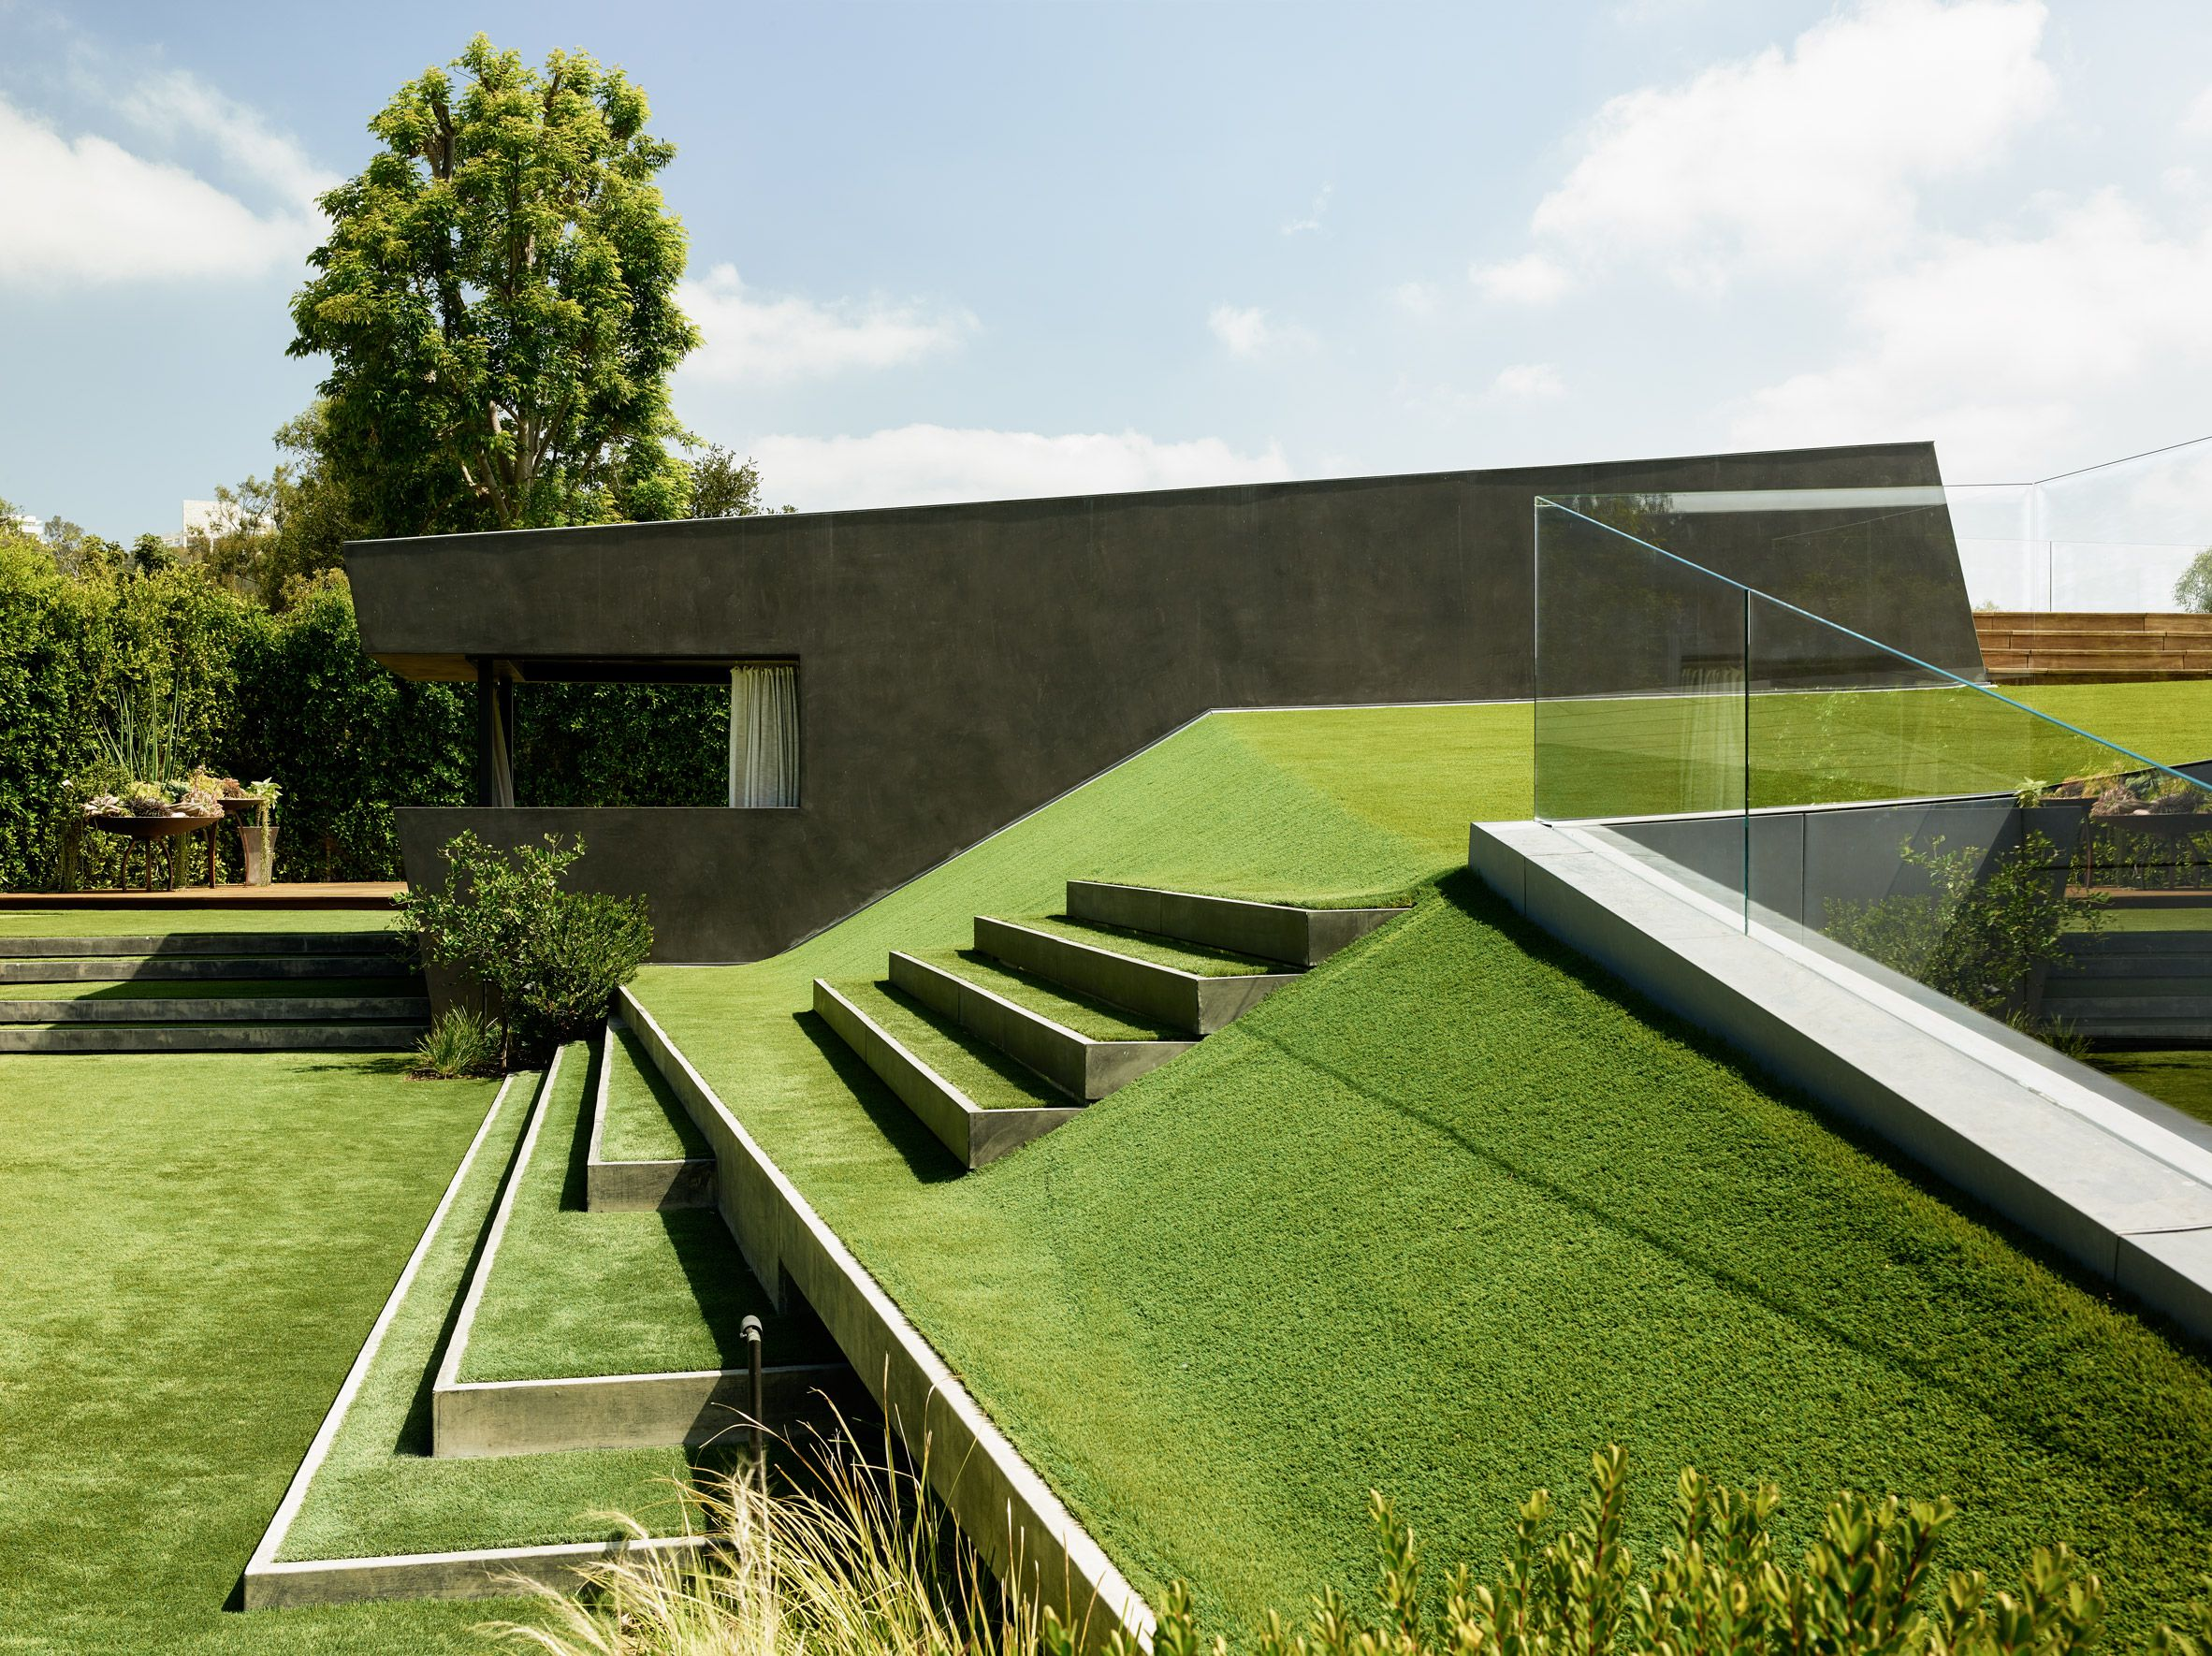 Grassy Landscape Cascades Over Angular Los Angeles House By Eric Rosen Architect Green Roof Architecture